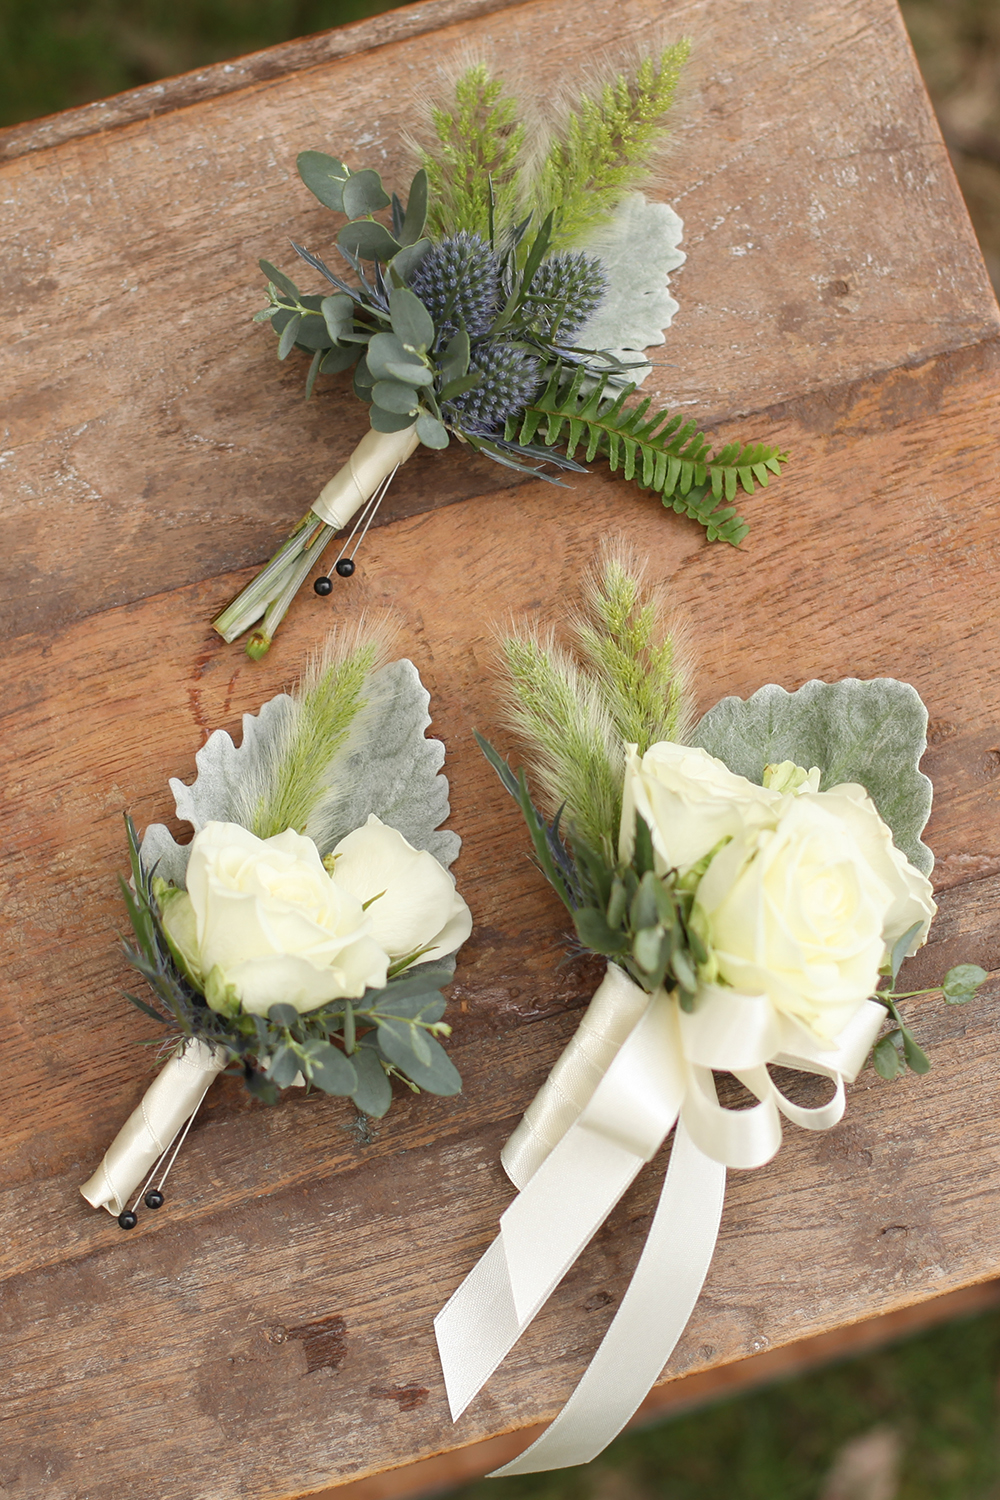 boutonnieres and corsages by wedding florist Floral Verde LLC in Cincinnati, Ohio; with Snow Flake spray roses, eryngium, dusty miller, gunnii eucalyptus and bunny tail grass